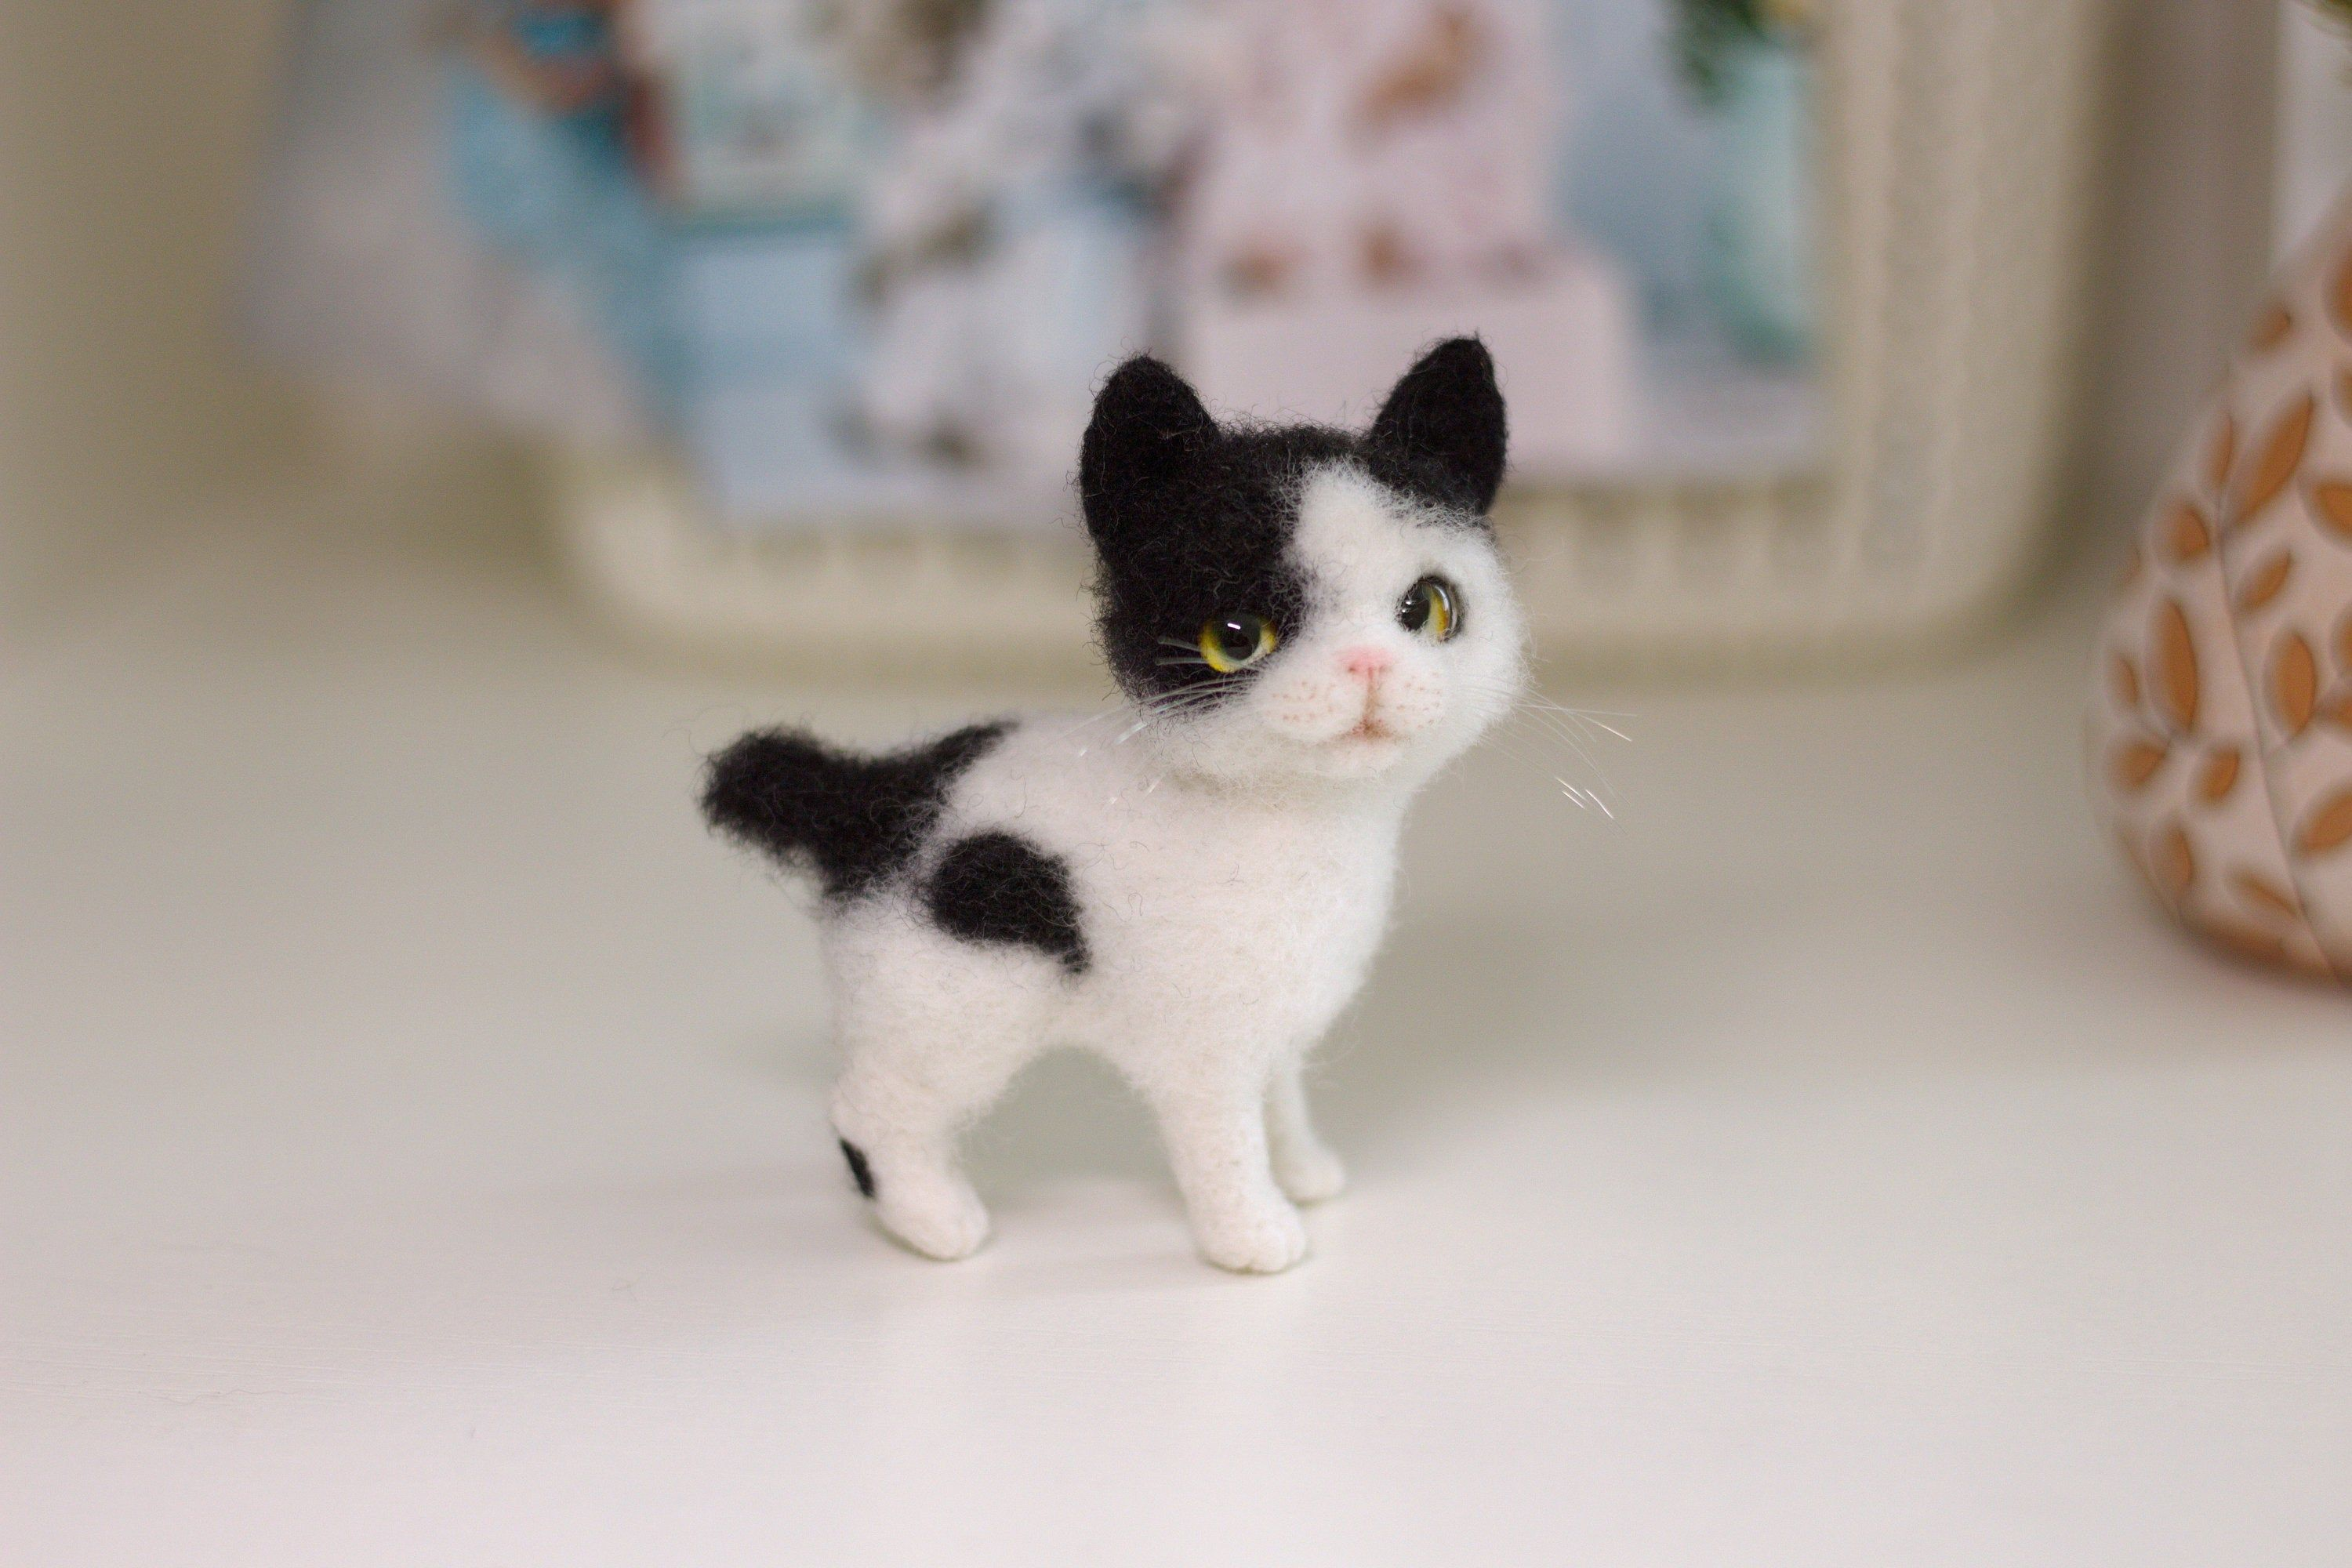 Black And White Little Cat Japanese Bobtail Cute Kitten Toy Etsy In 2020 Kittens Cutest Cat Toys Spotted Cat